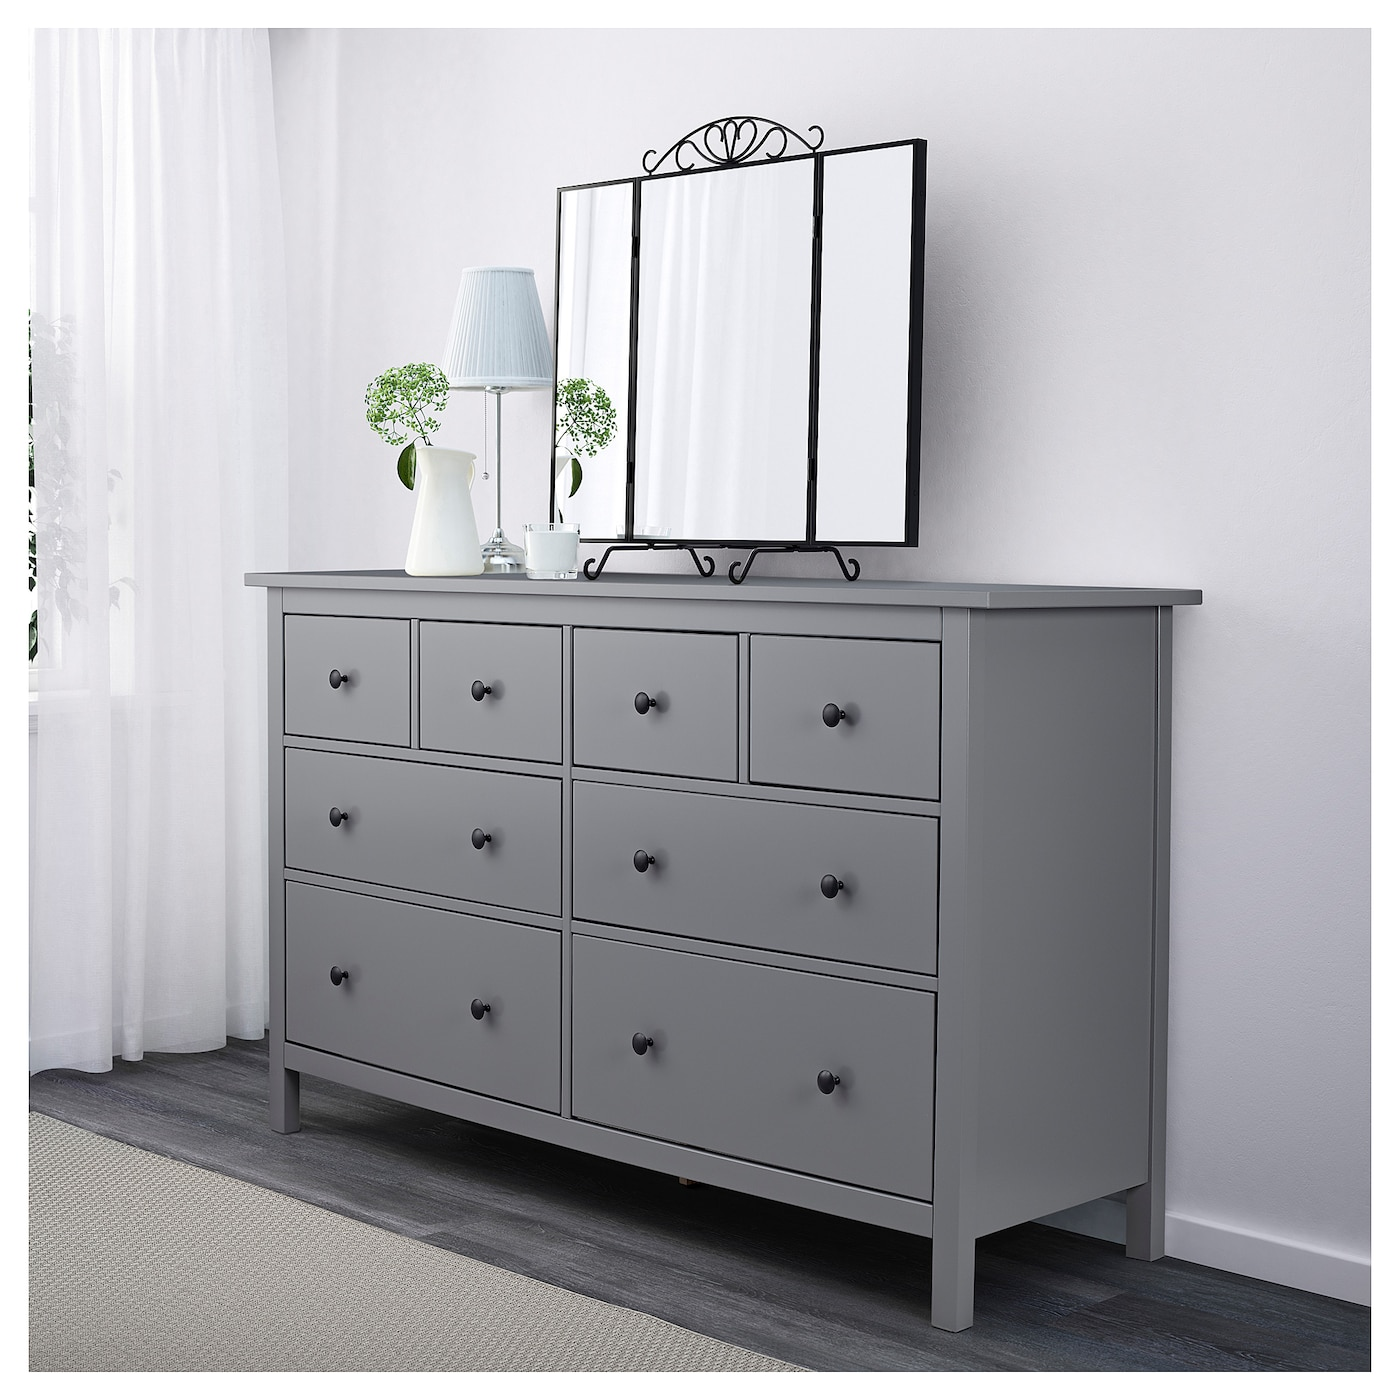 Hemnes chest of drawers grey cm ikea